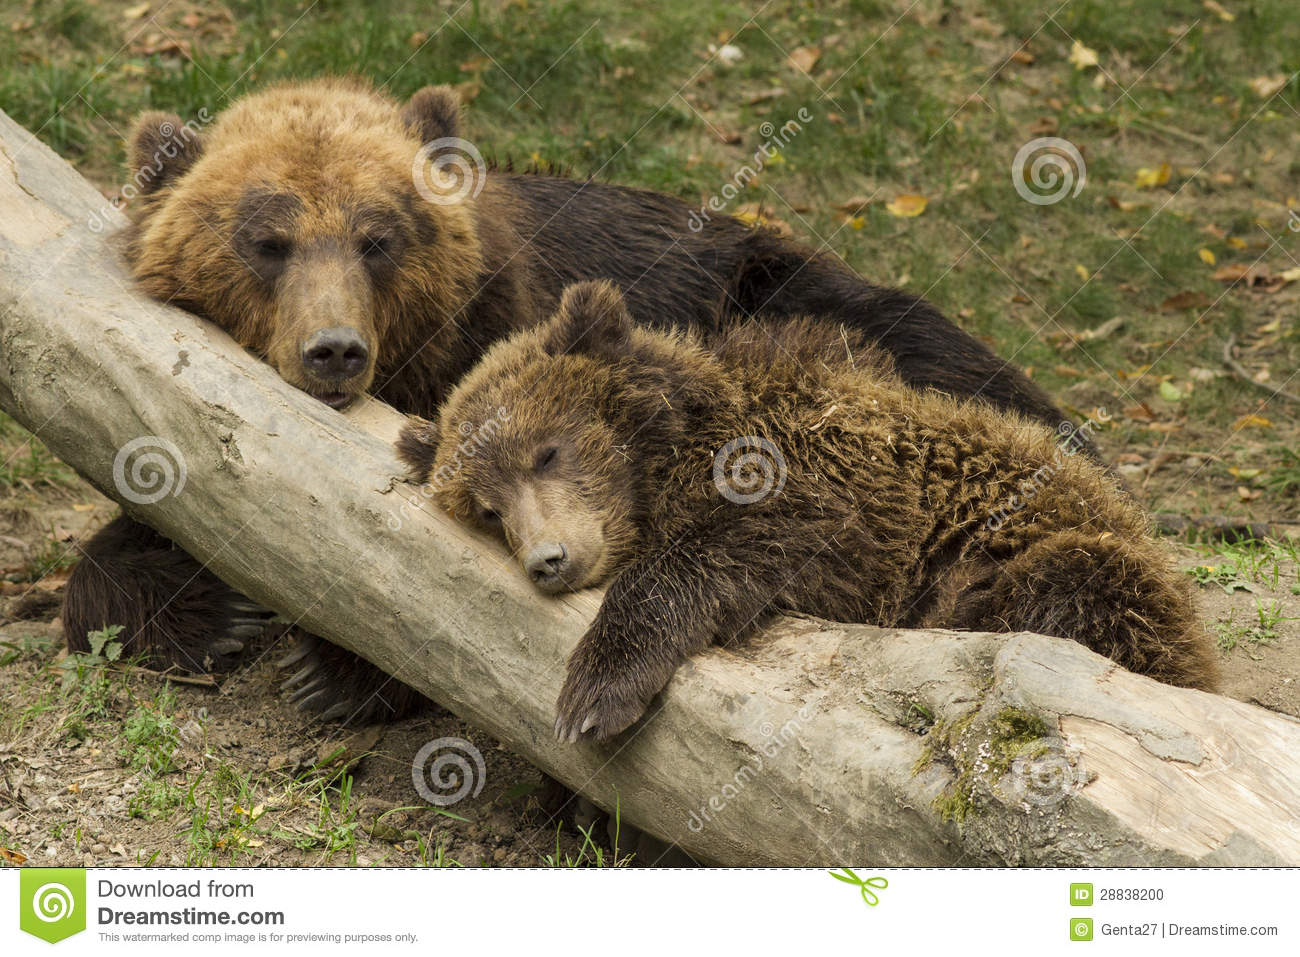 Cub sleeping on the trunk of a fallen tree beside mother bear.